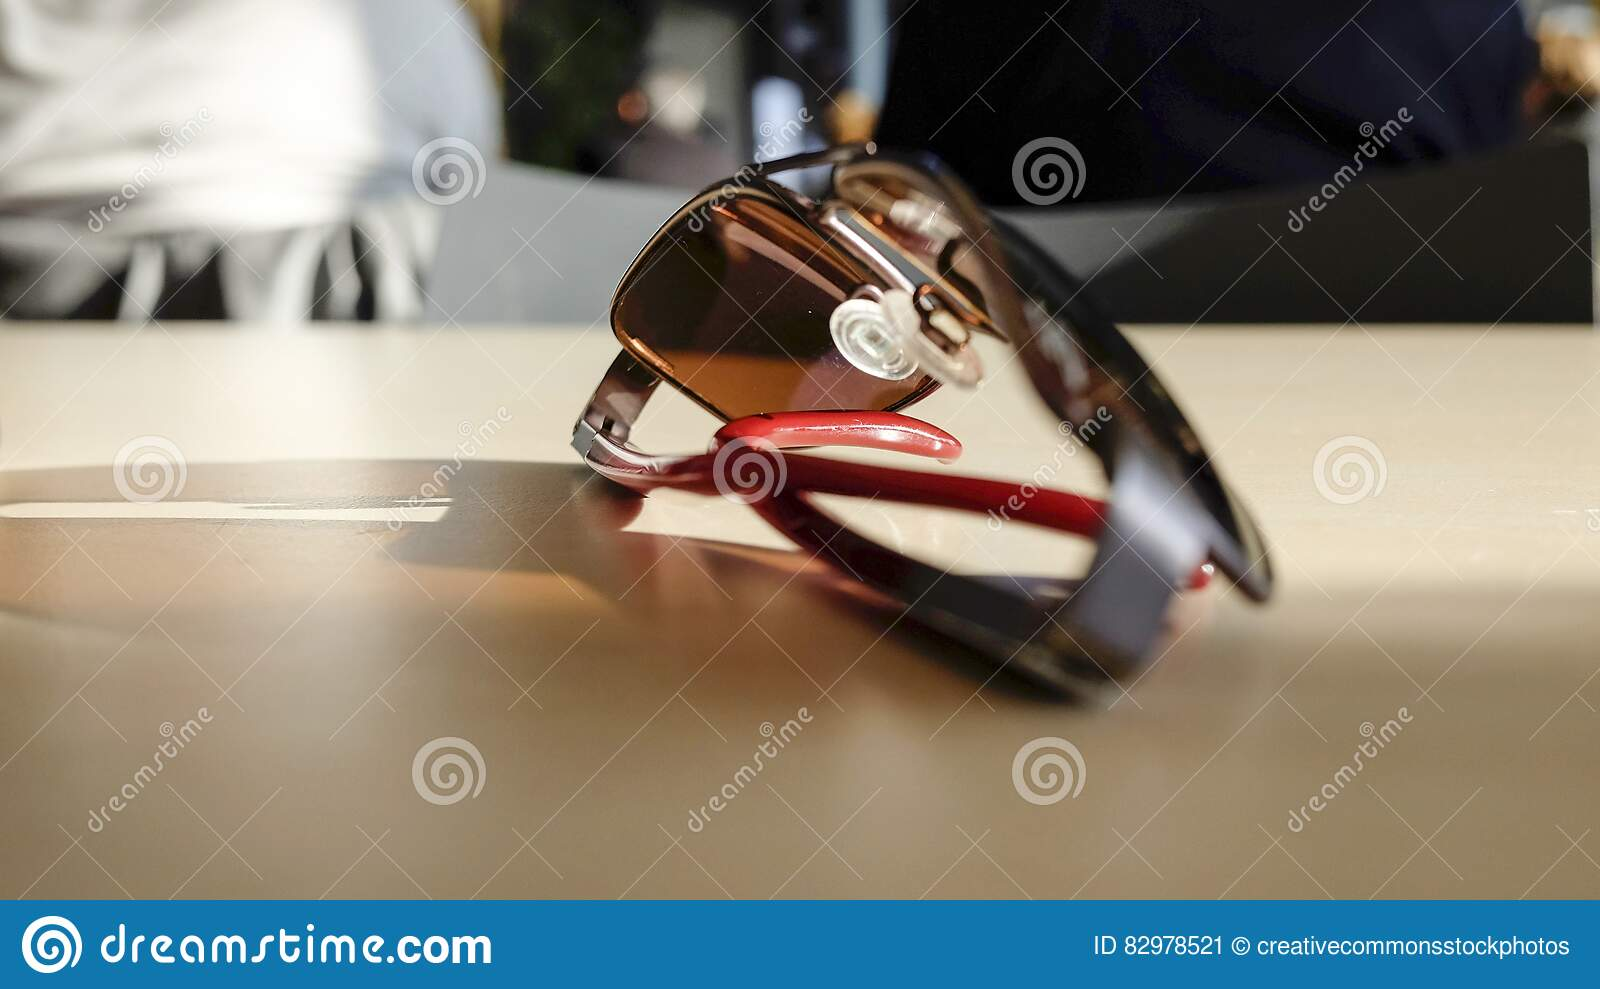 Download Silver And Gray Frame Sunglasses Stock Image - Image of table, sunglasses: 82978521